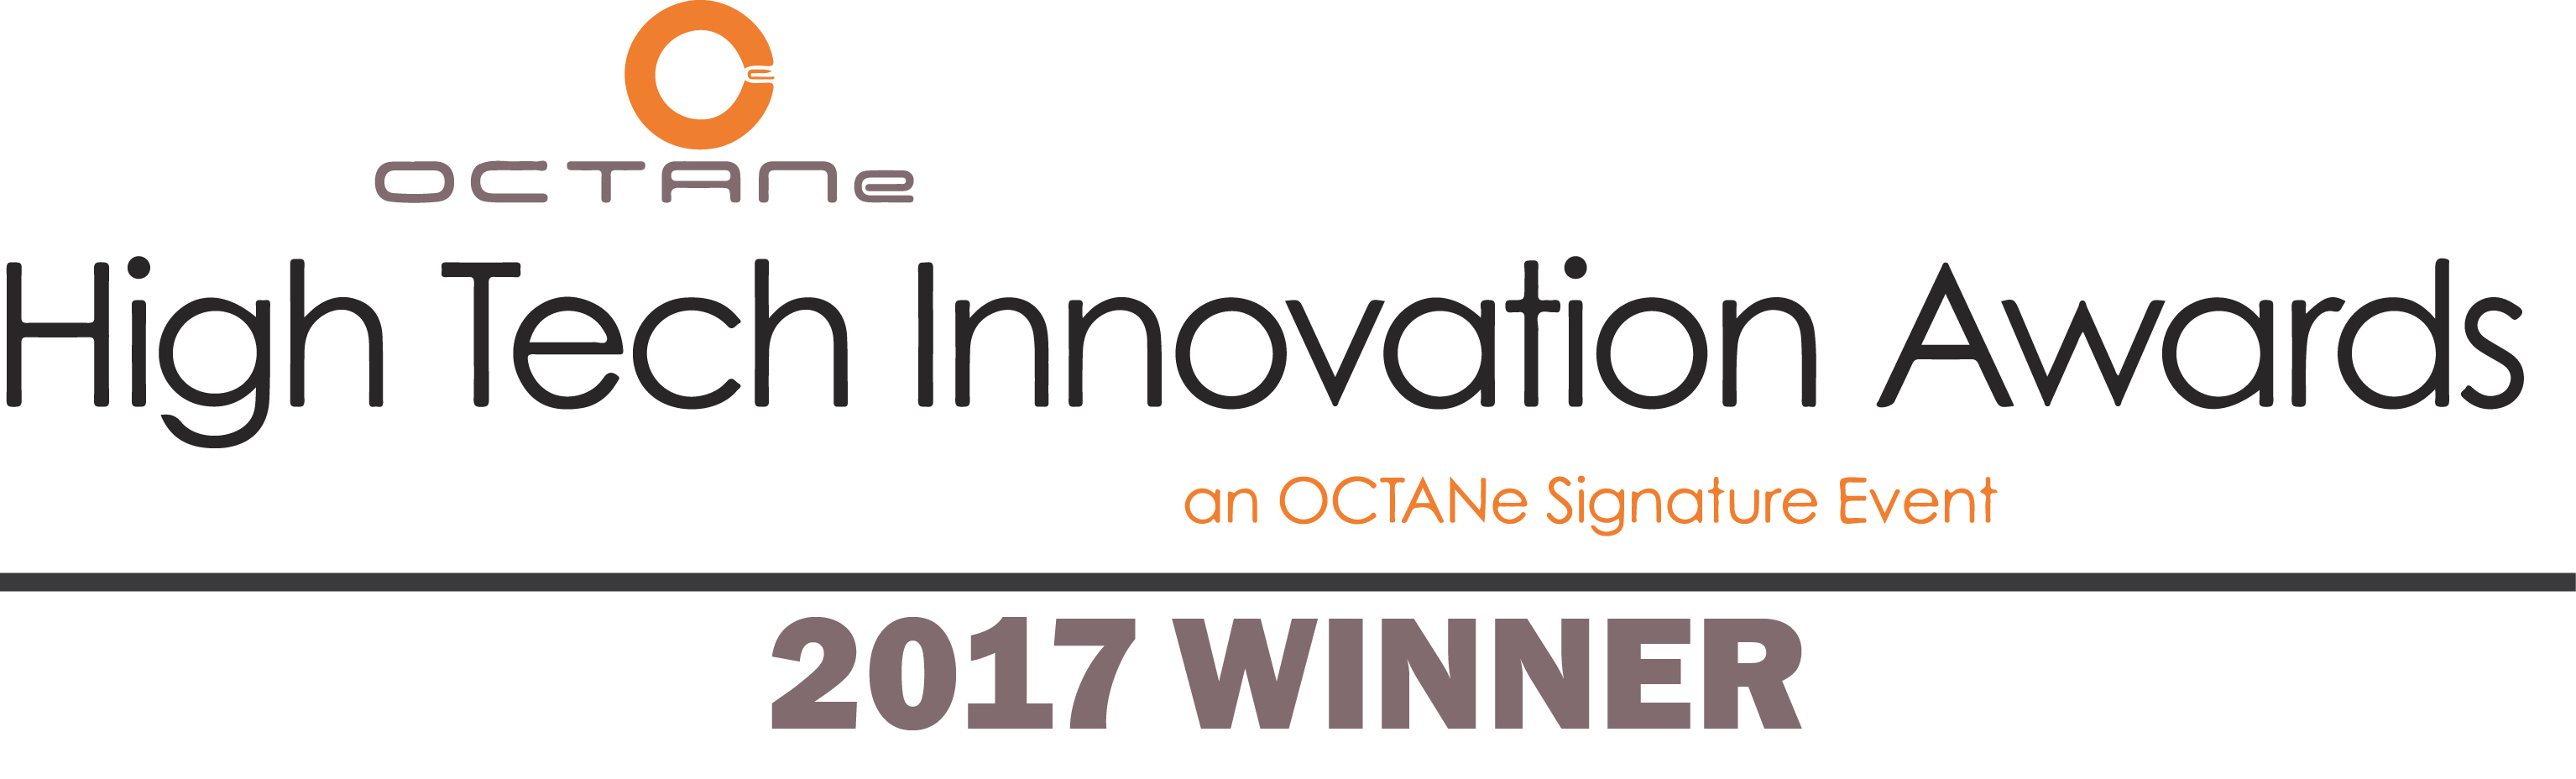 OCTANe High Tech Innovation Awards